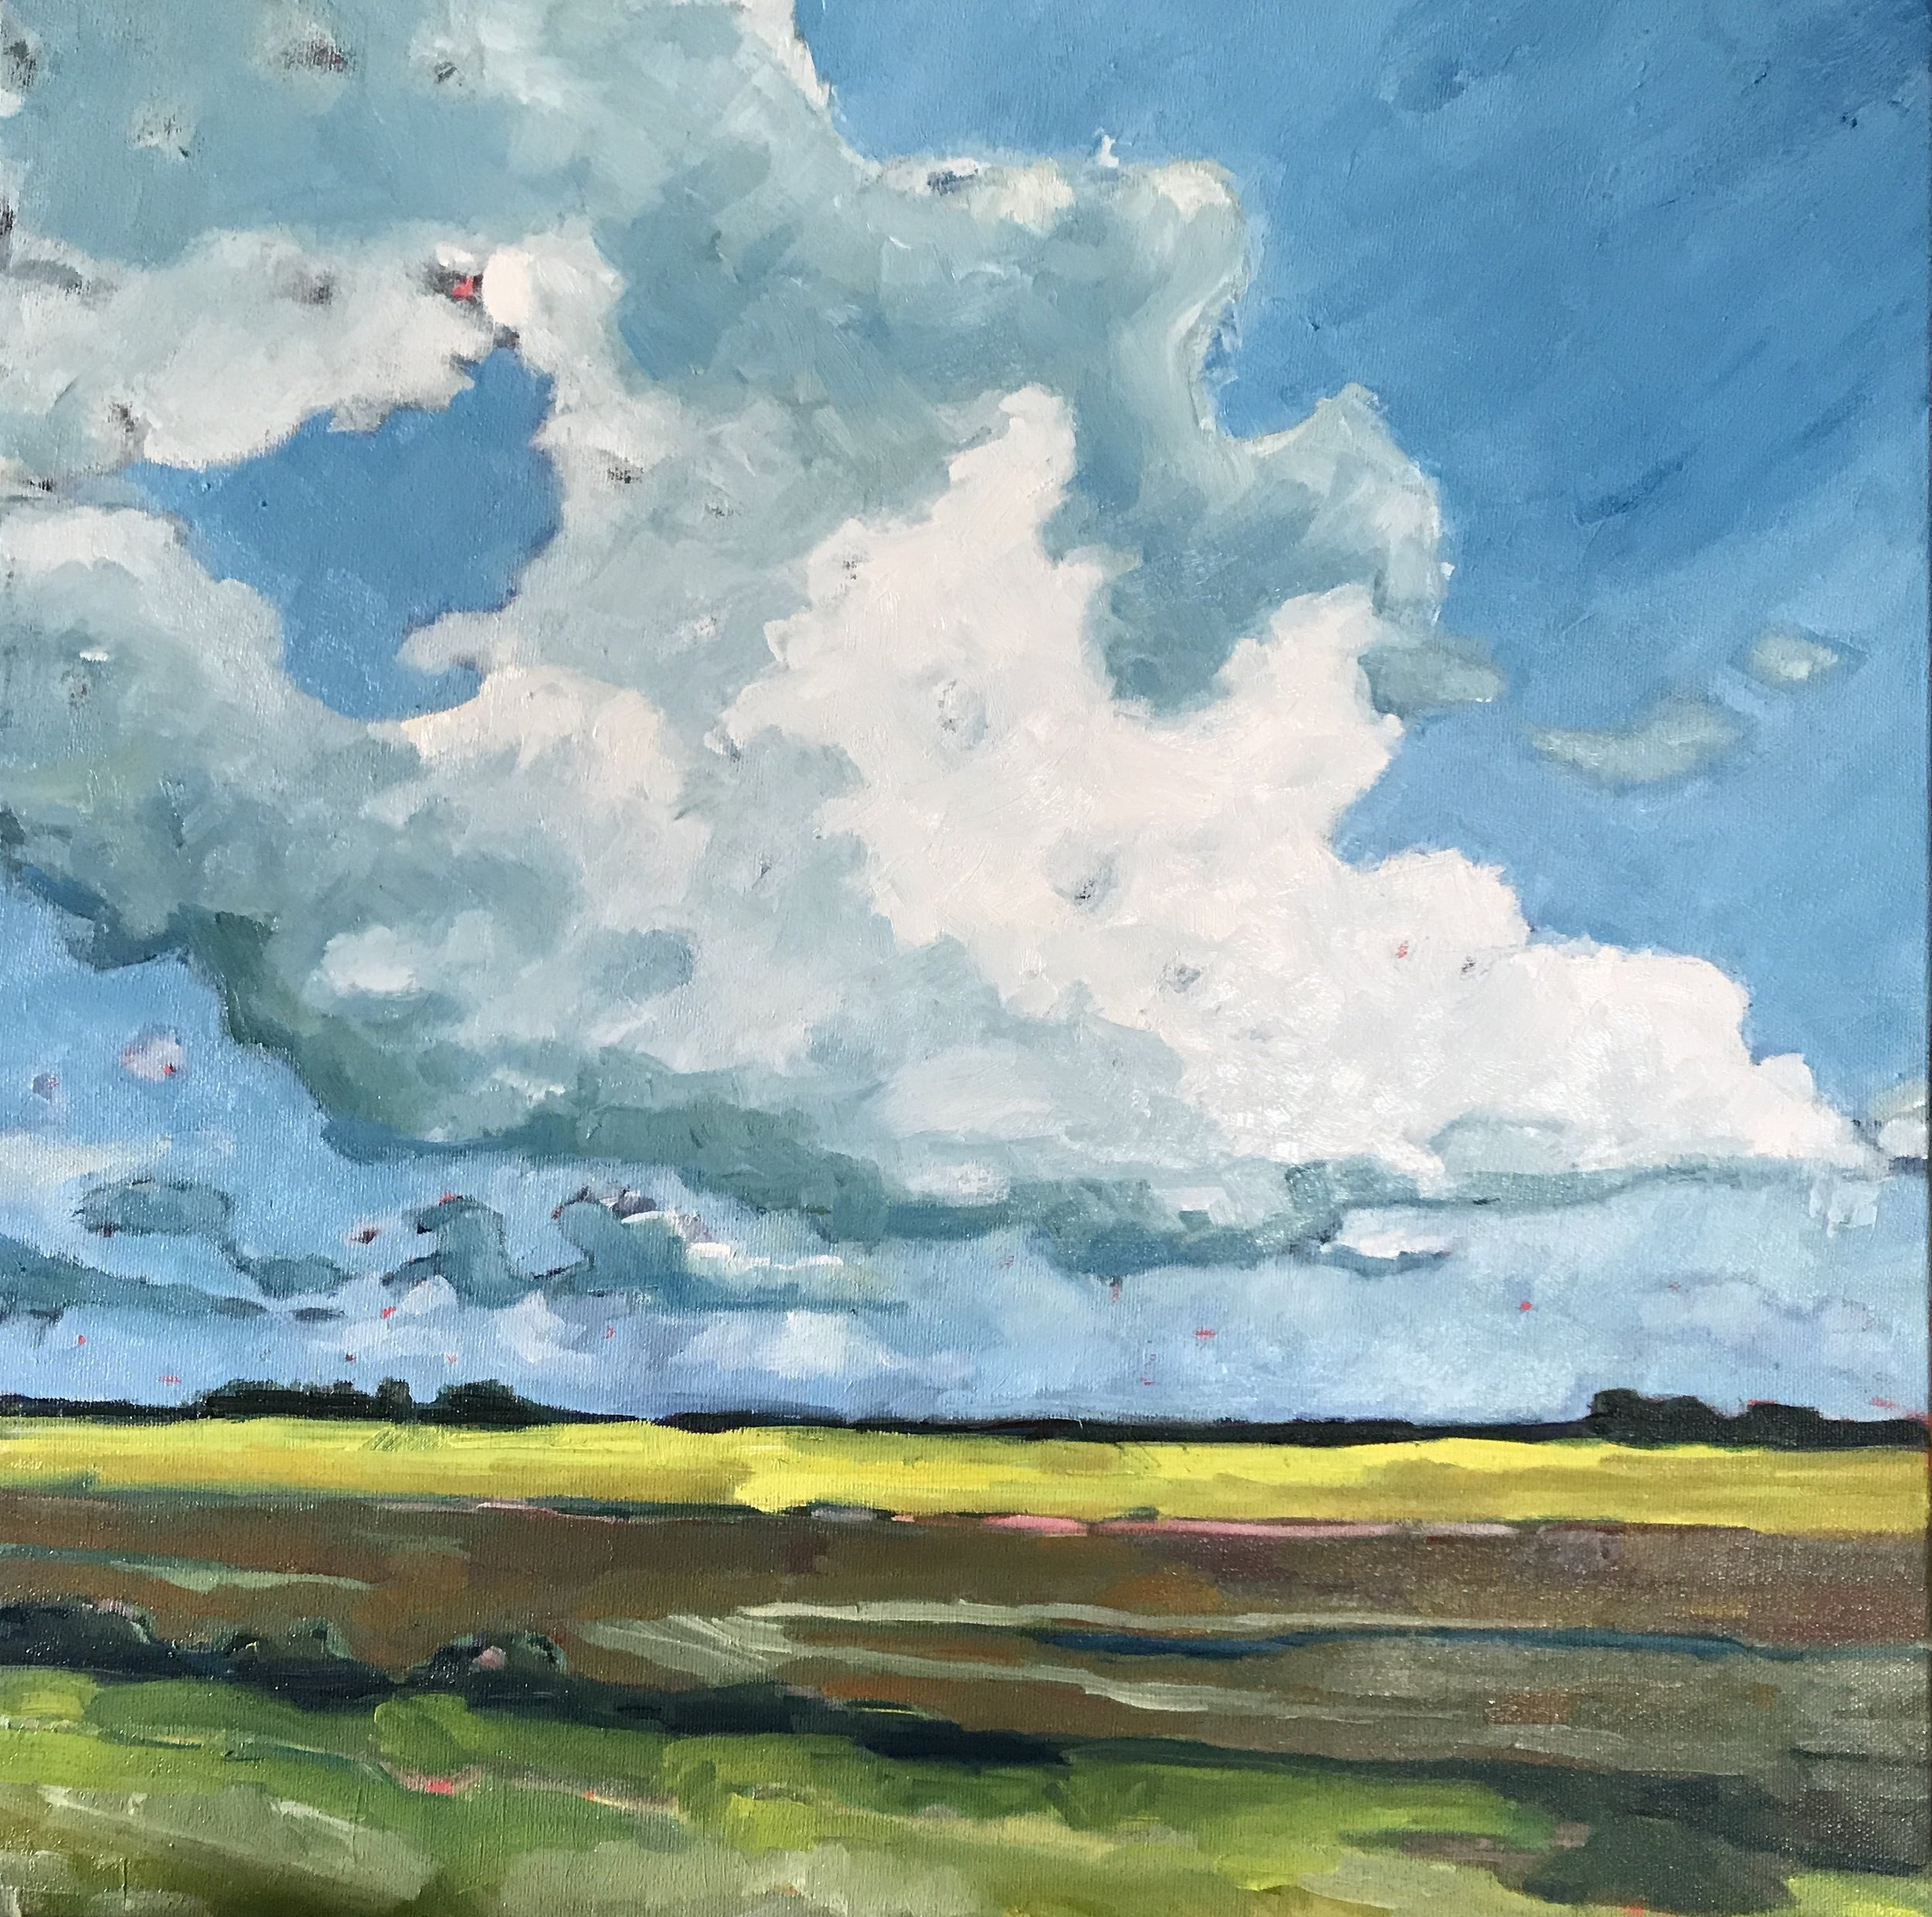 Day Dreamy Clouds (sold)